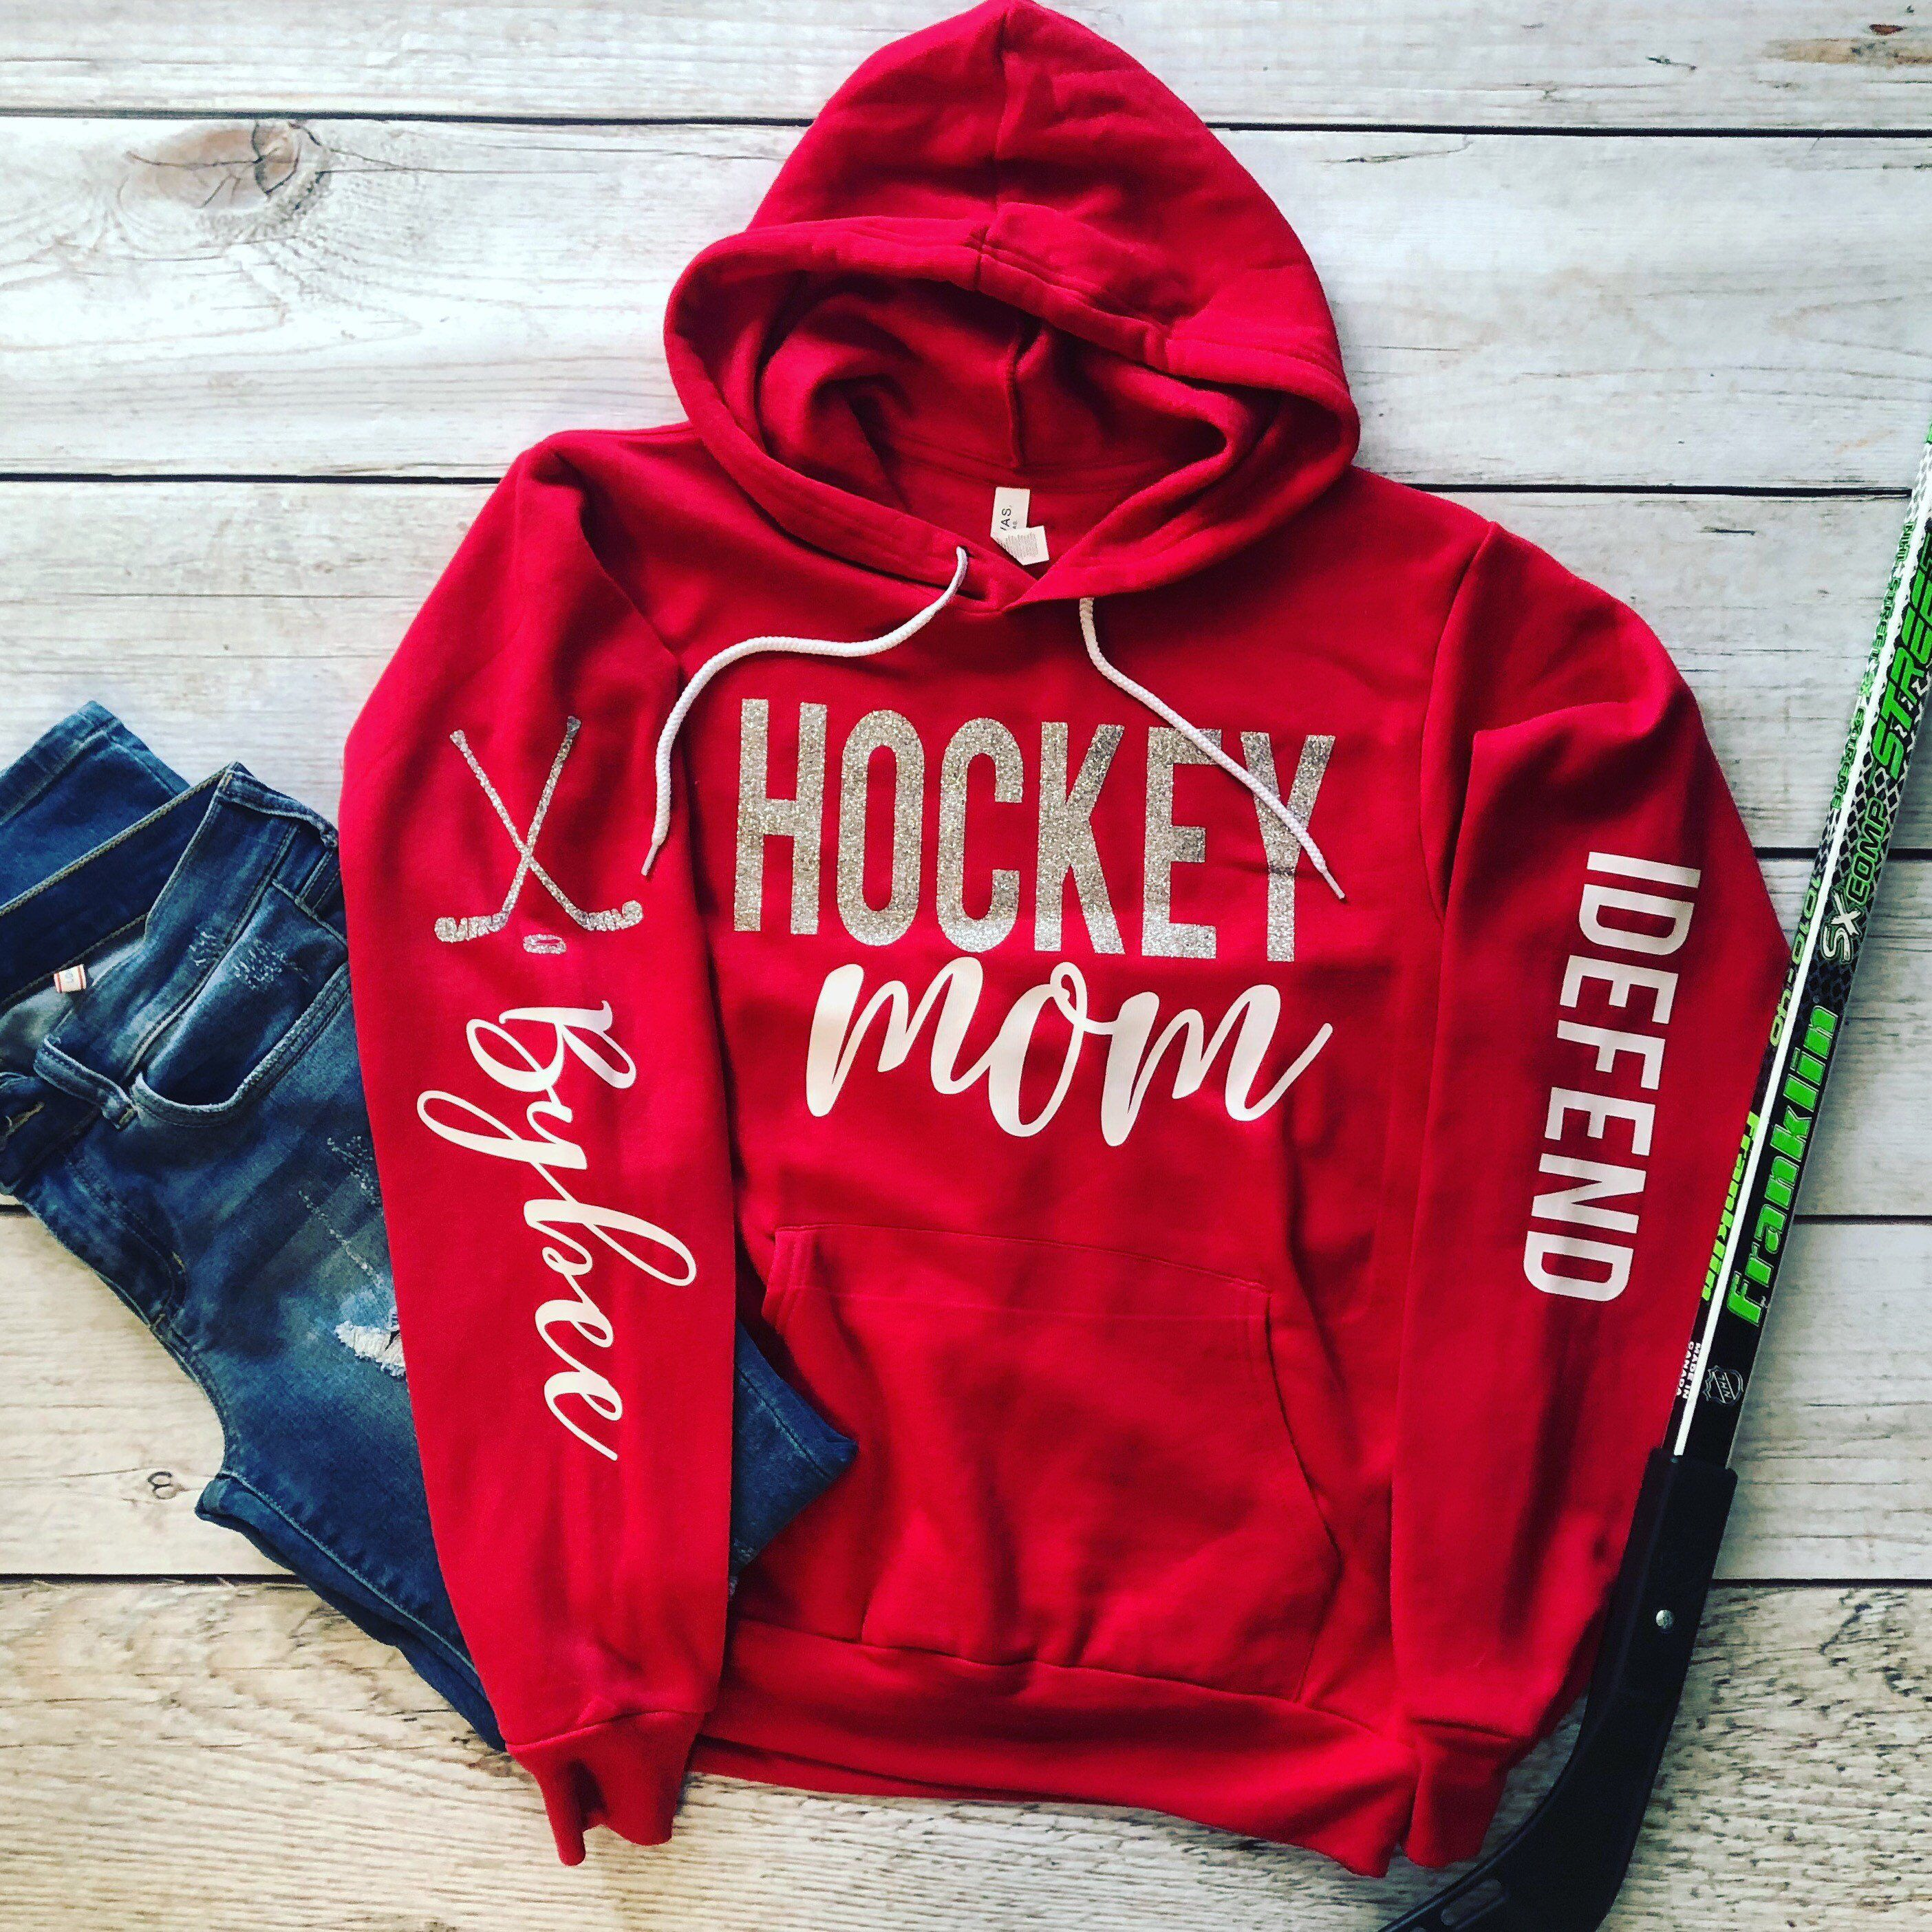 Excited To Share This Item From My Etsy Shop Hockey Mon Hockey Hockey Shirt Hockey Mom Shirt Sweatshirt Hoodie Custo Hockey Shirts Mom Sweatshirt Sweatshirts